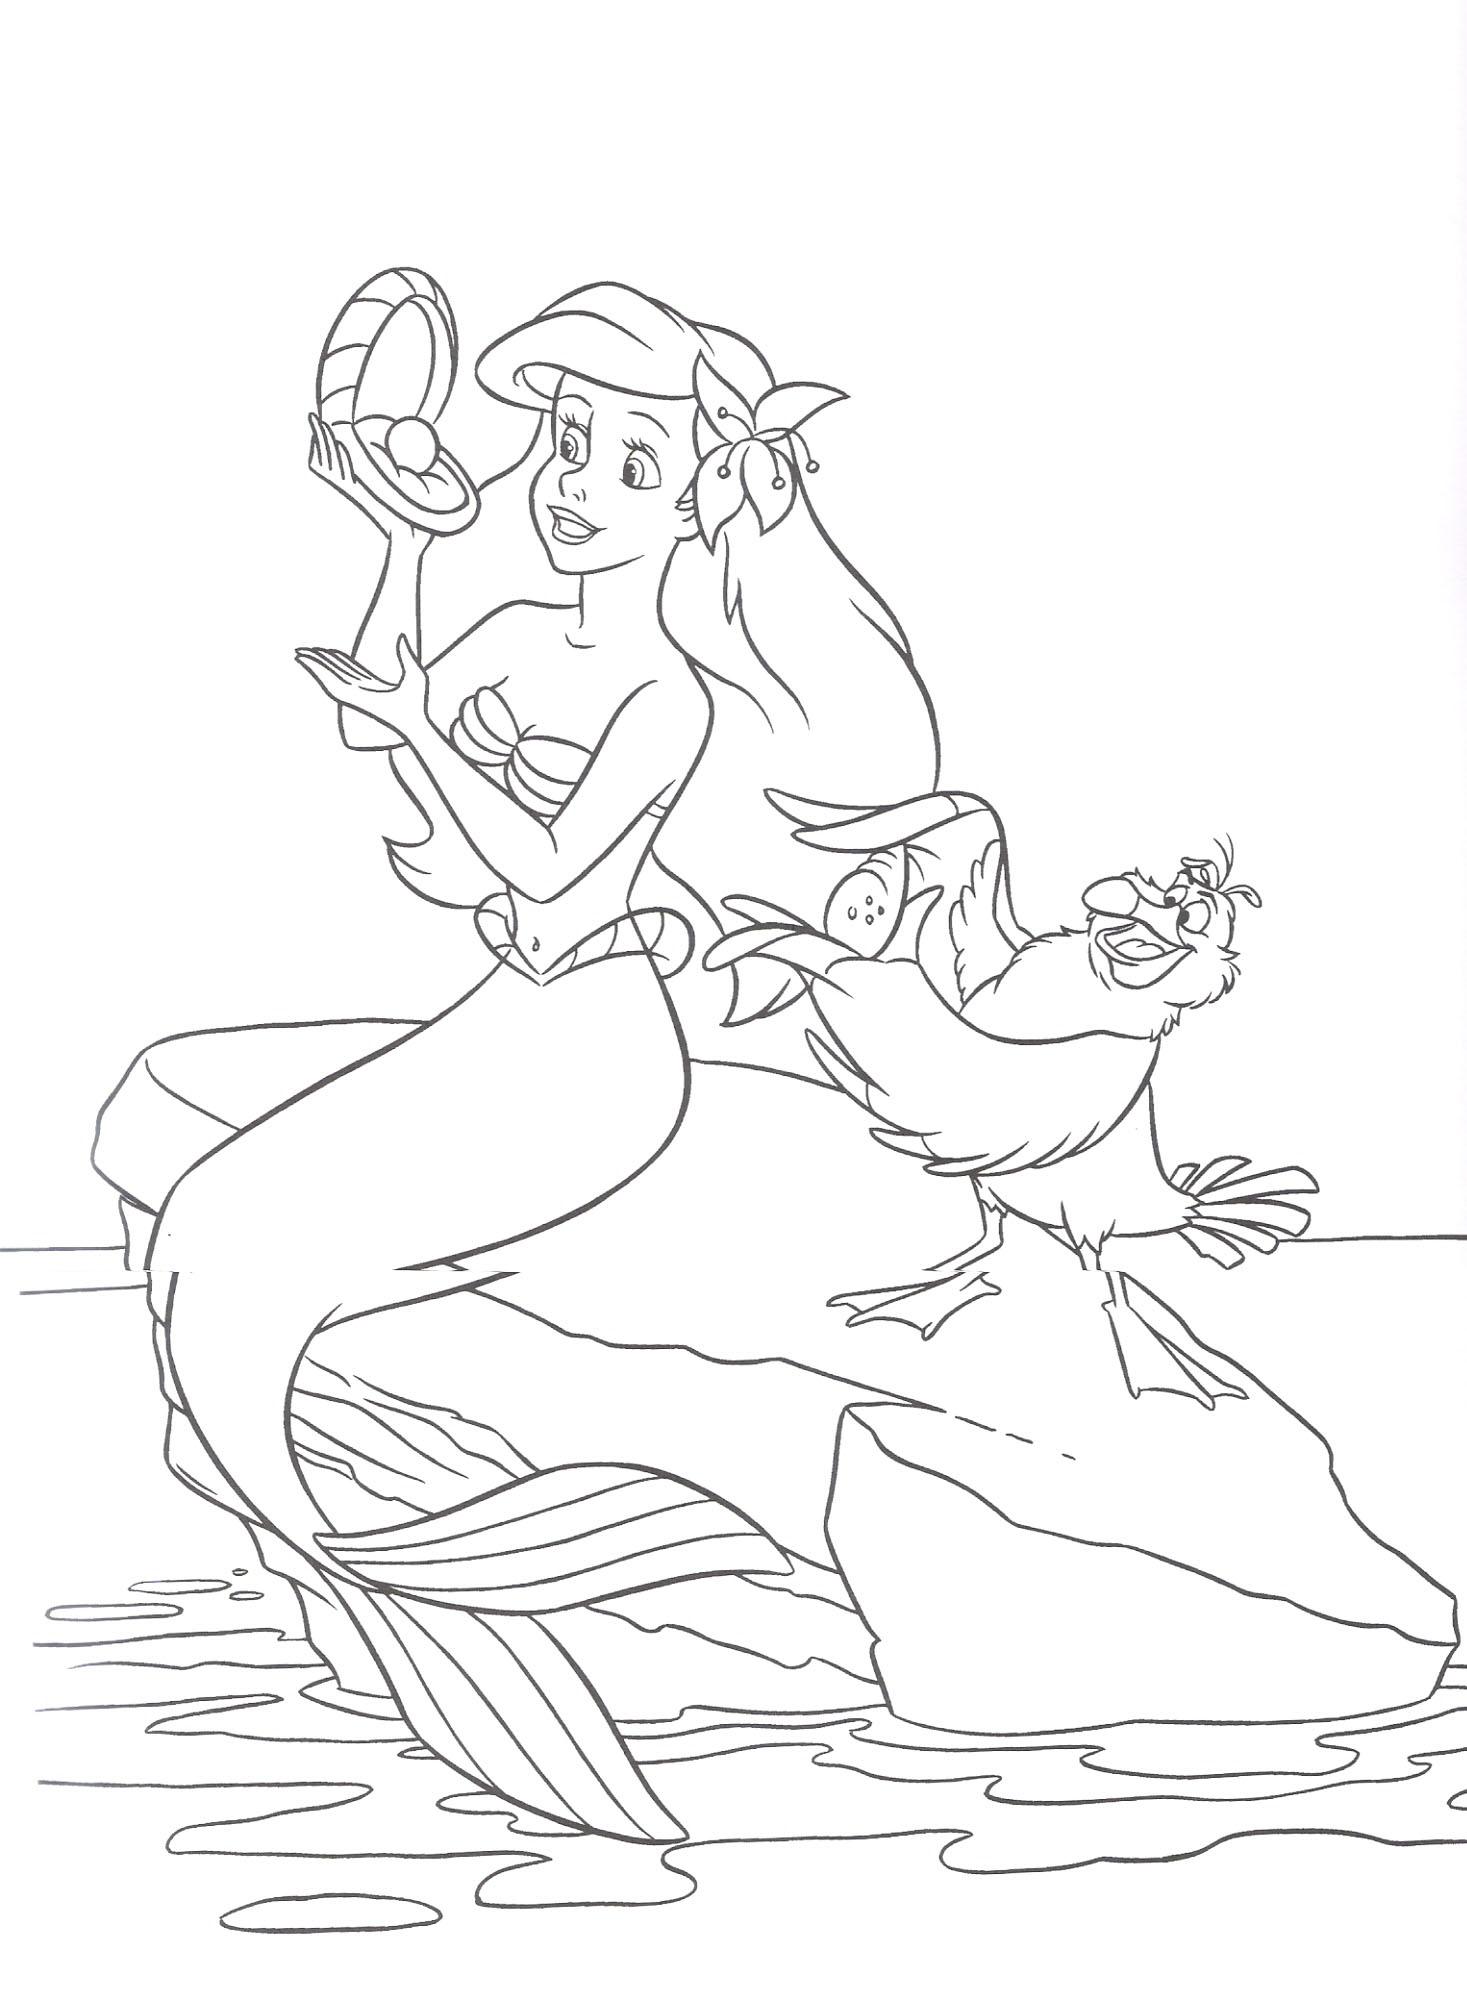 ariel the mermaid coloring pages - photo#42